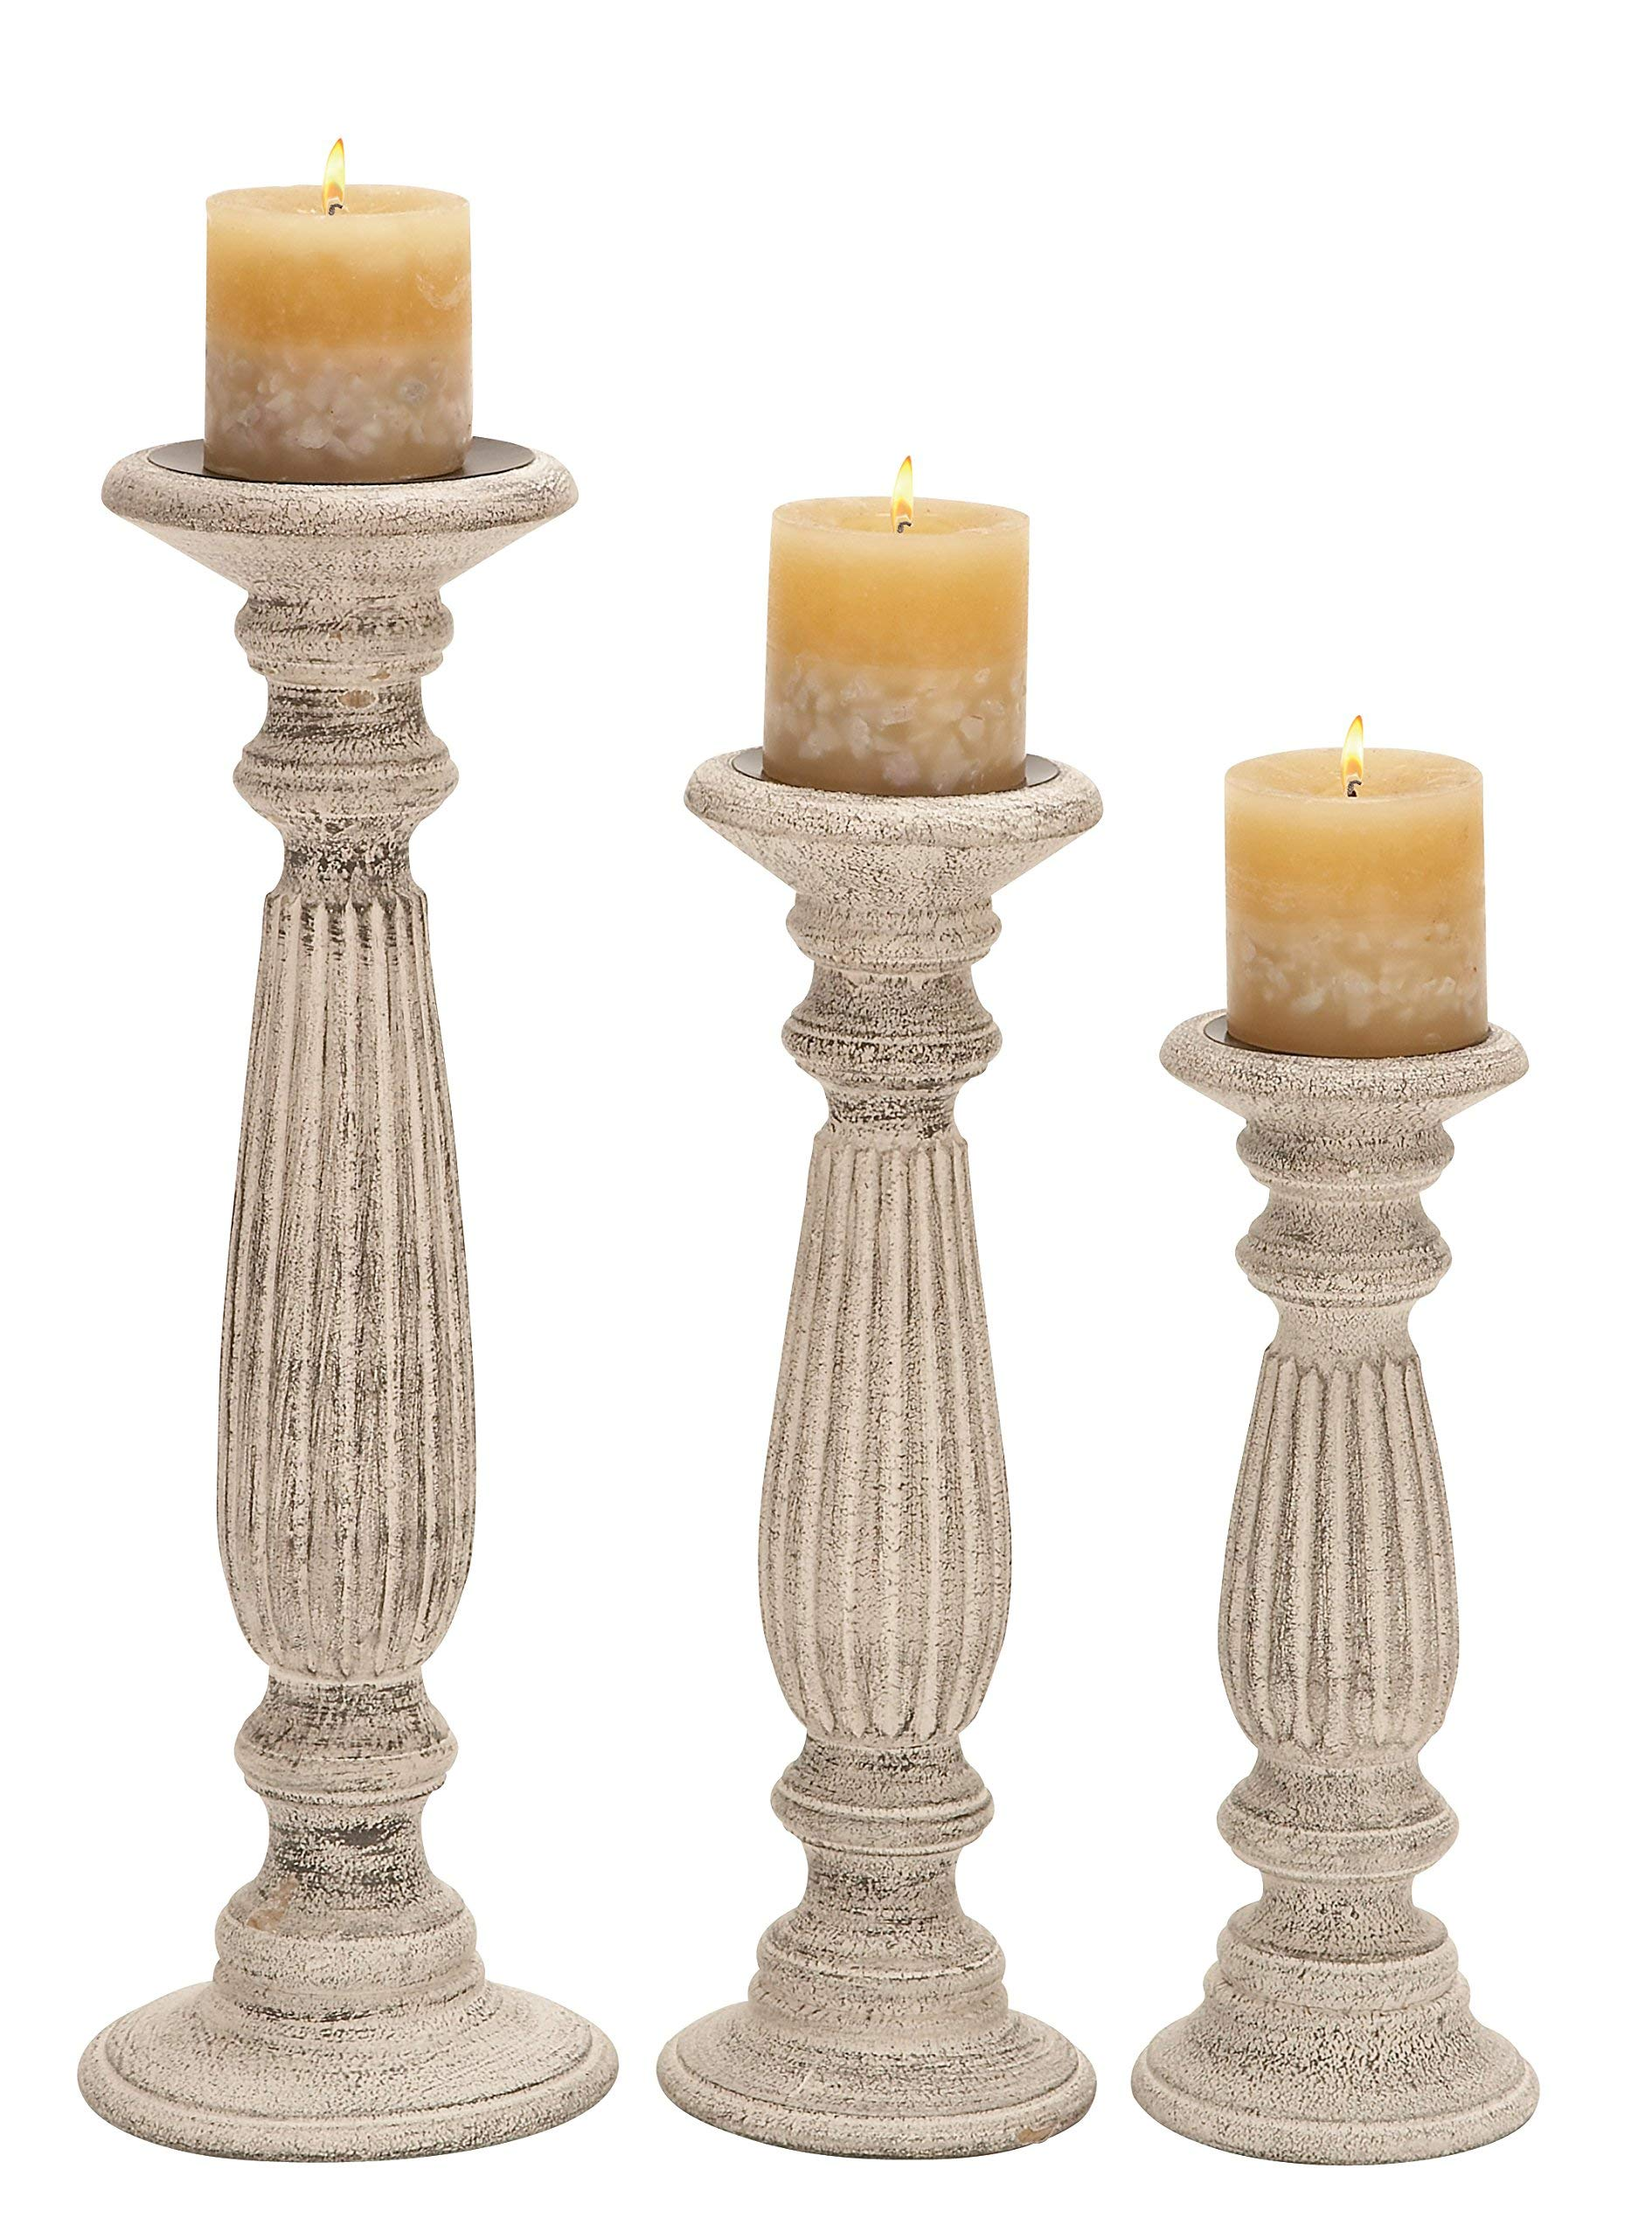 Deco 79 Wood Candle Holder, White, 18 by 15 by 12-Inch by Deco 79 (Image #1)